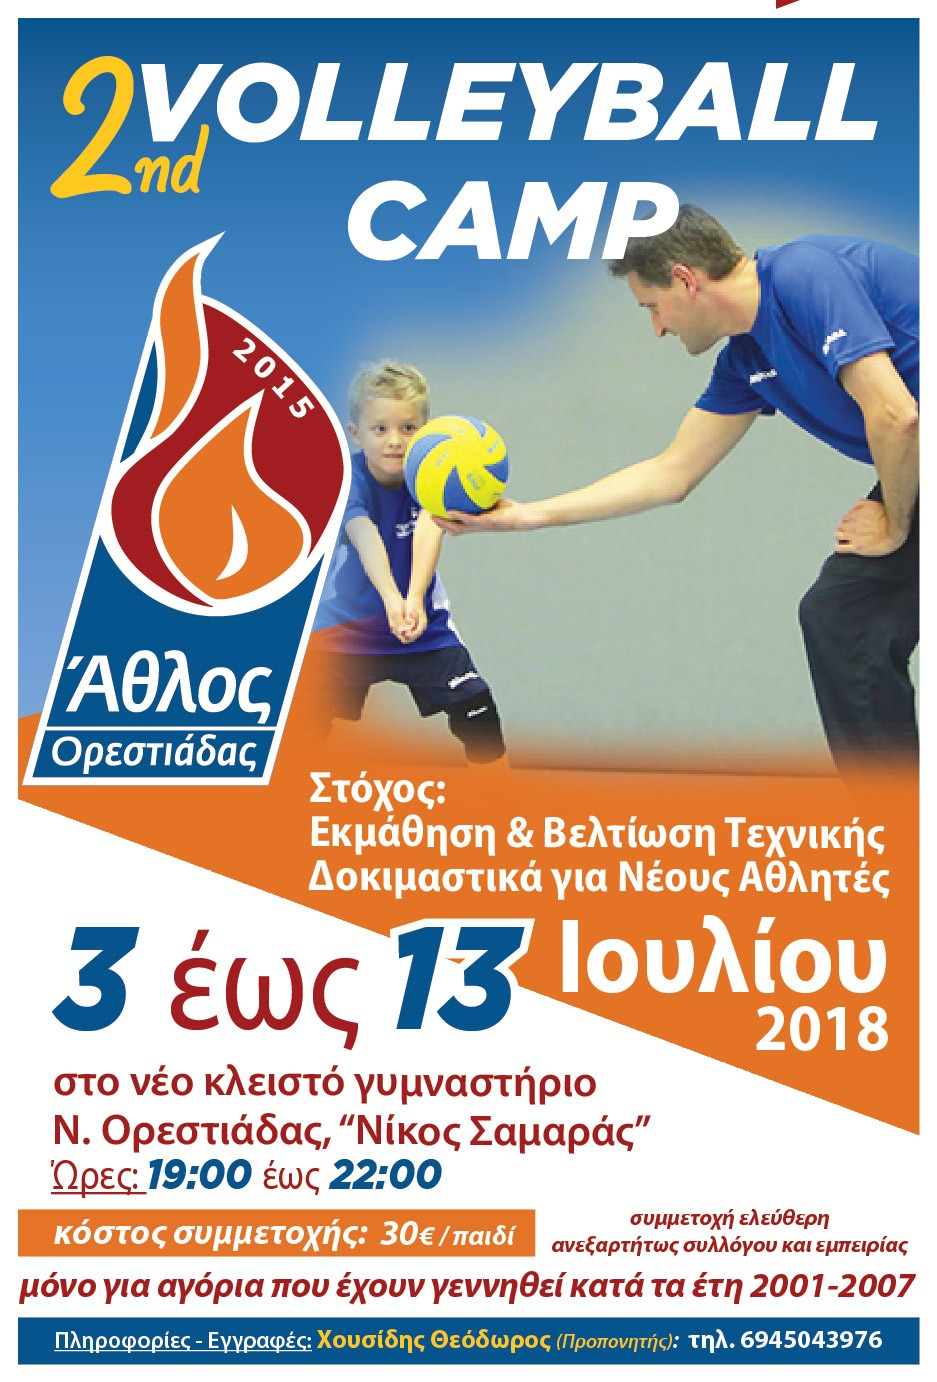 VOLLEYBALL CAMP 2018